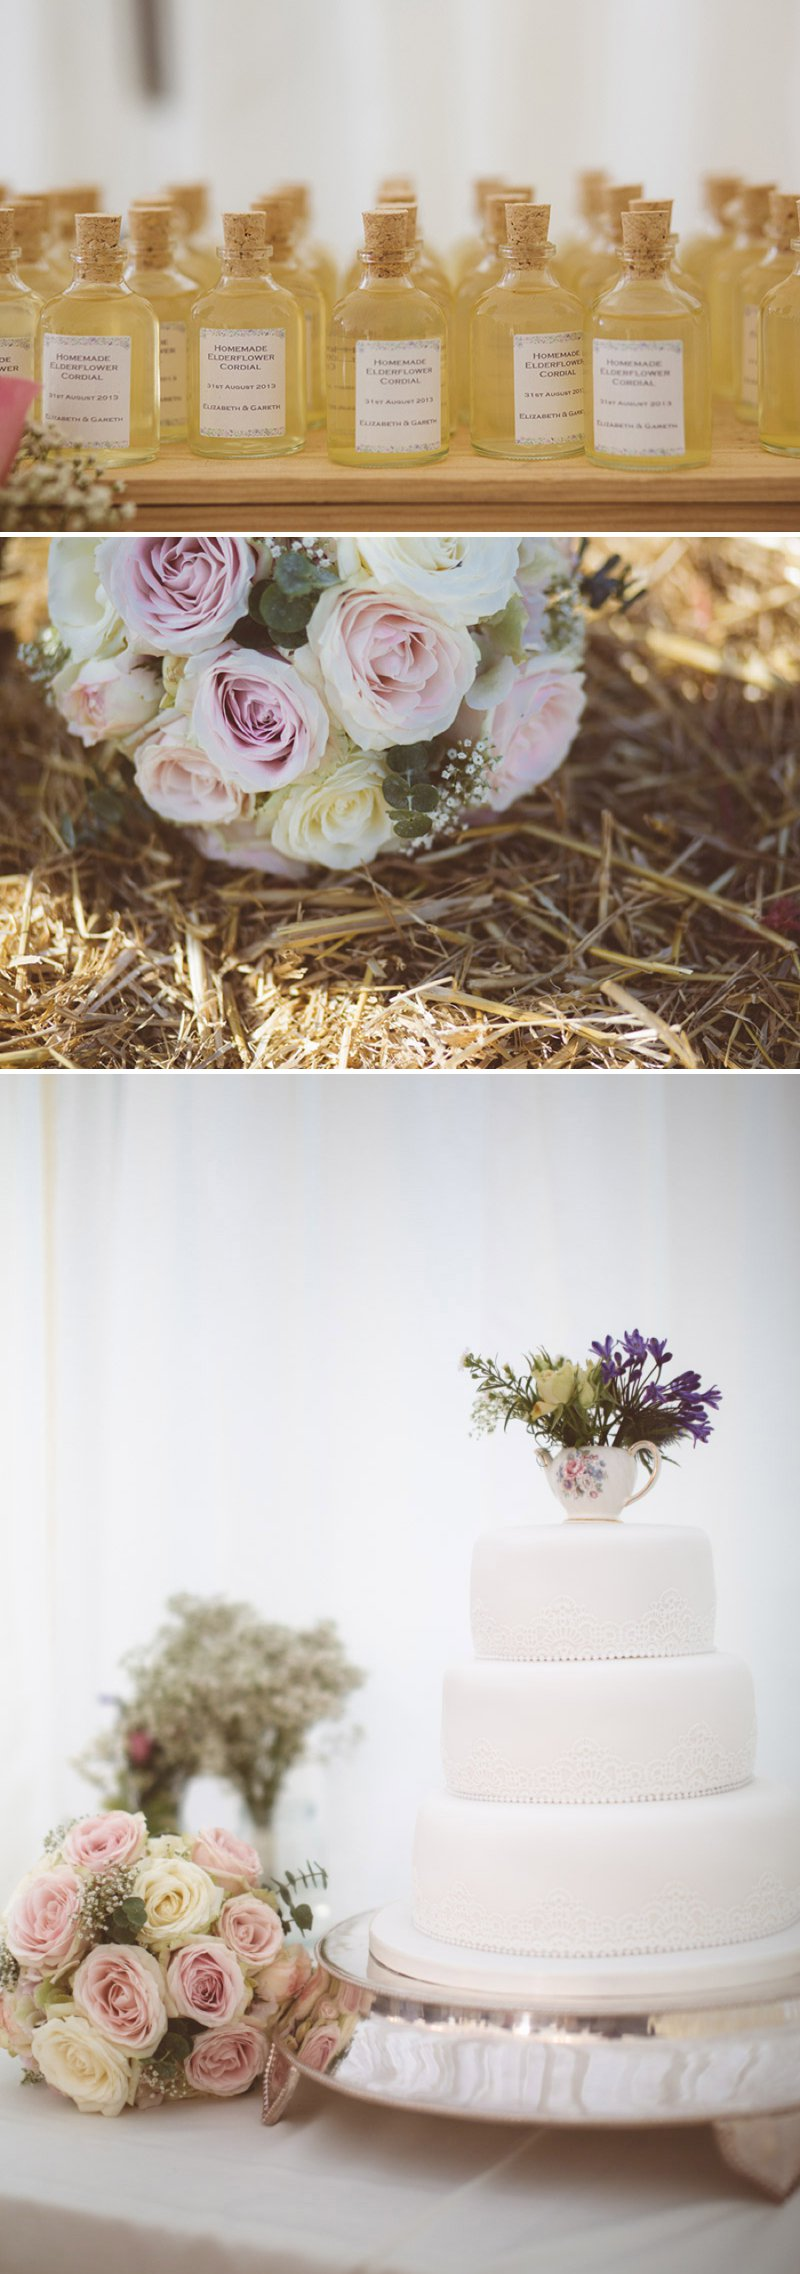 Rustic Wedding At Creslow Manor With Bride In Lace Paloma Blanca Gown With Groom In Morning Dress And Bridesmaids In Floral Print Dresses And Roses And Gypsophila In Bouquets Images By Joseph Hall 7